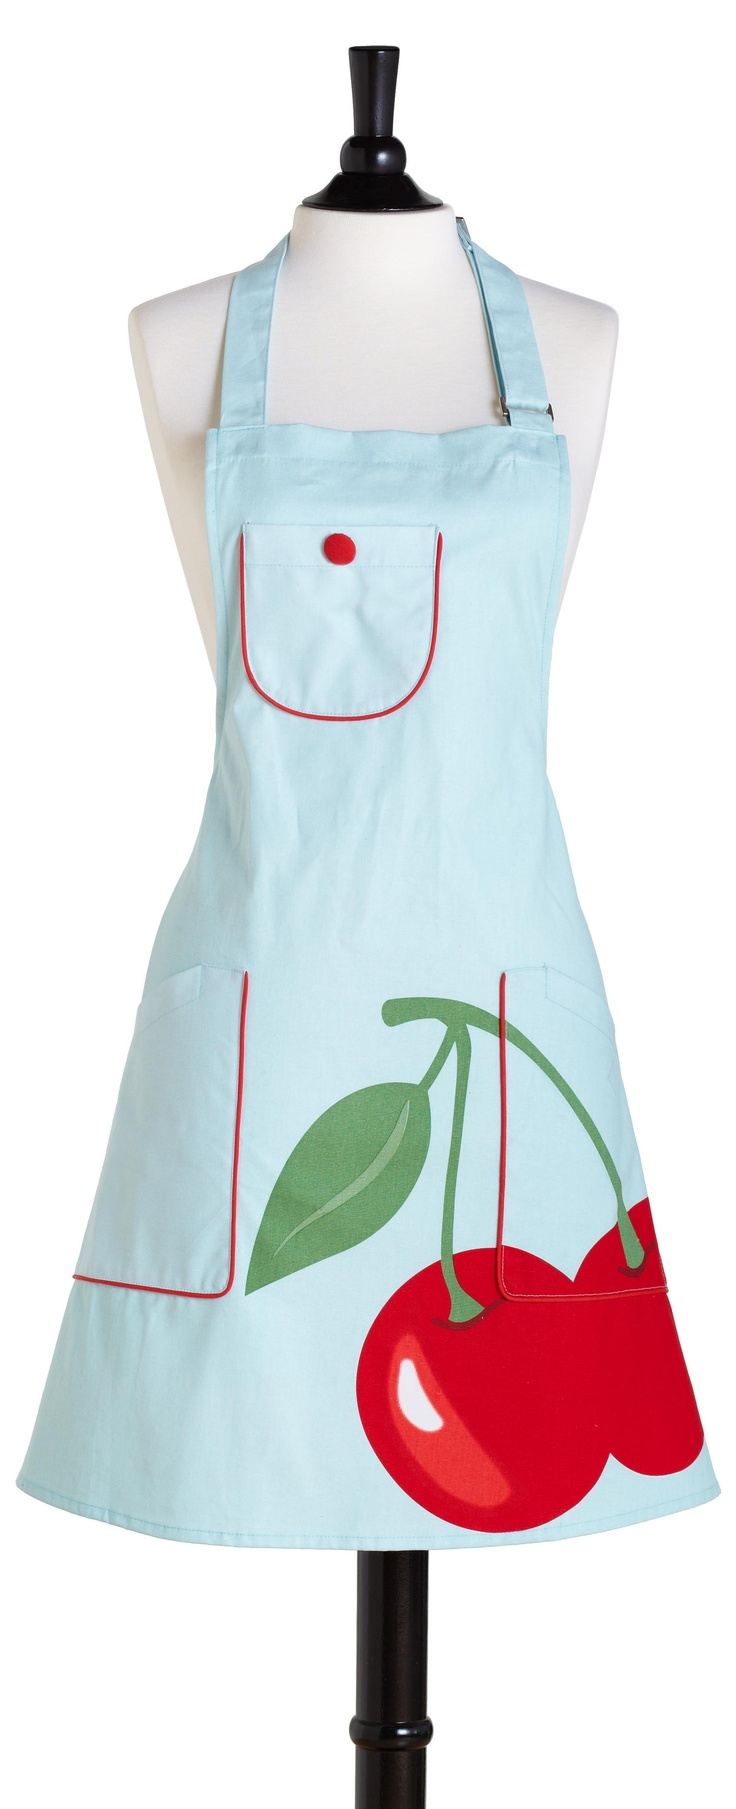 White stuff gateaux apron - 556 Best Images About With A Cherry On Top On Pinterest Cherry Kitchen Cherries And Cherry Dress